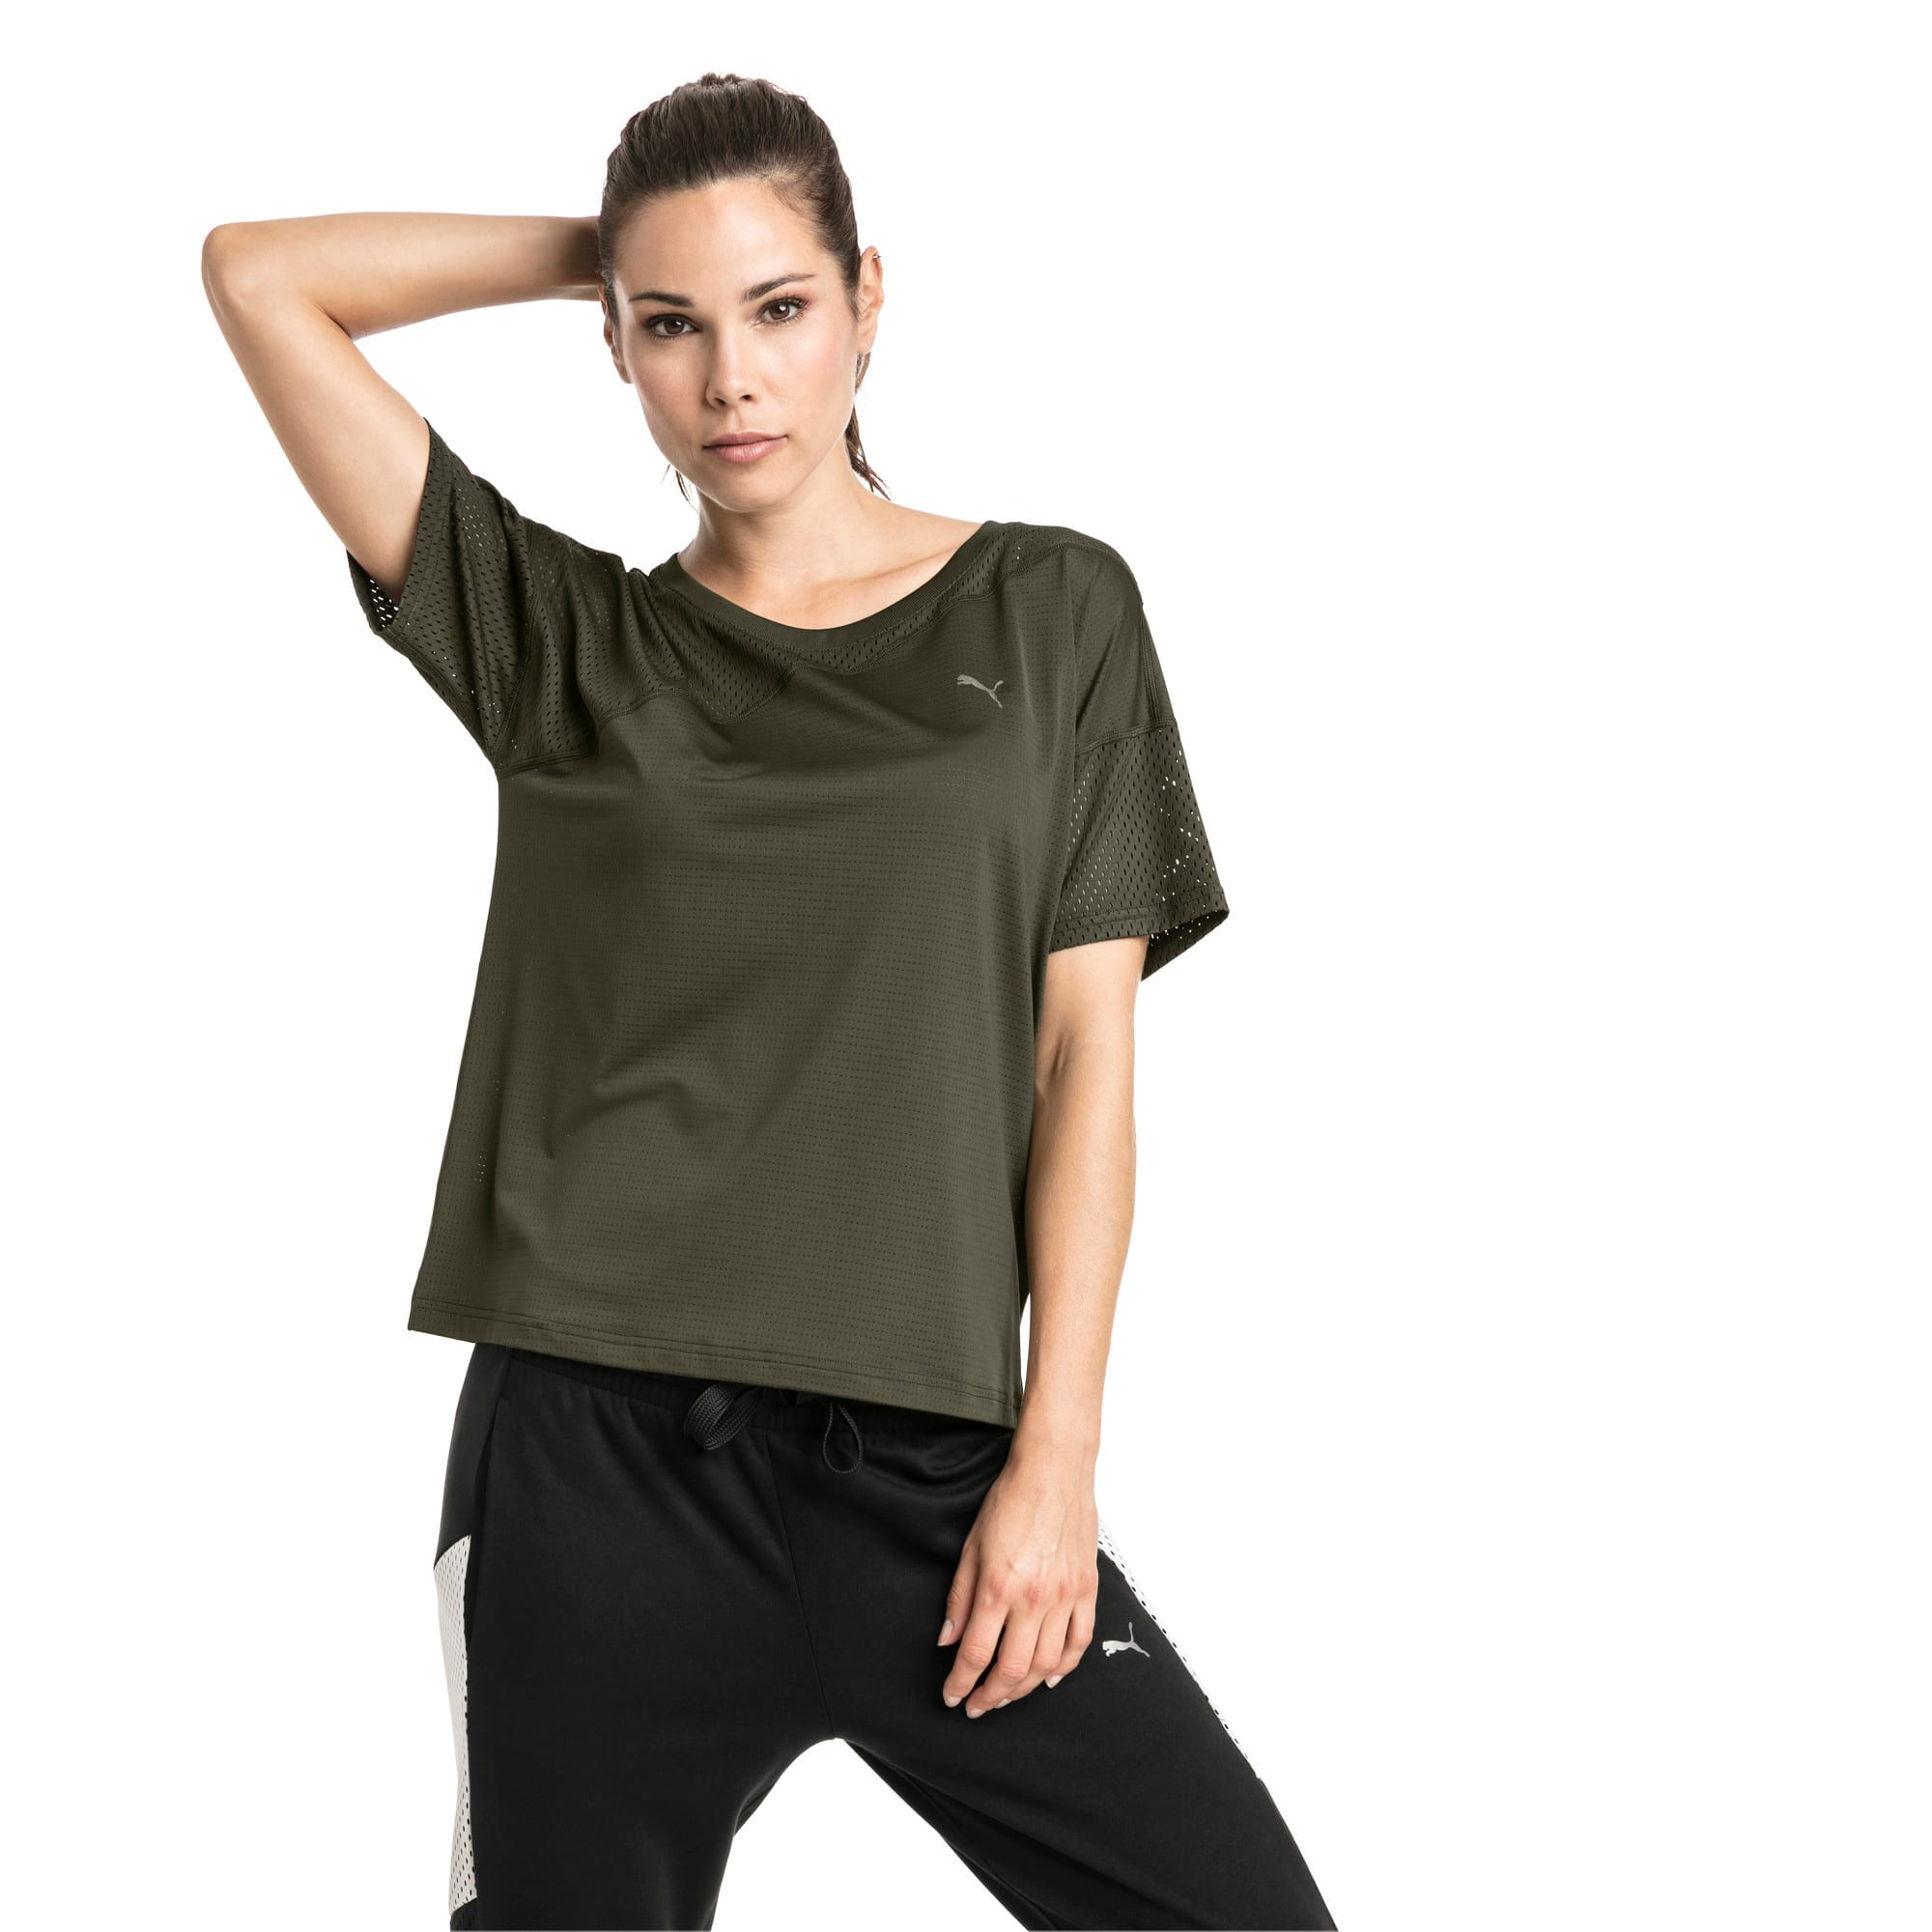 Thumbnail 1 of A.C.E. Mesh Blocked Women's Training Top, Forest Night, medium-IND